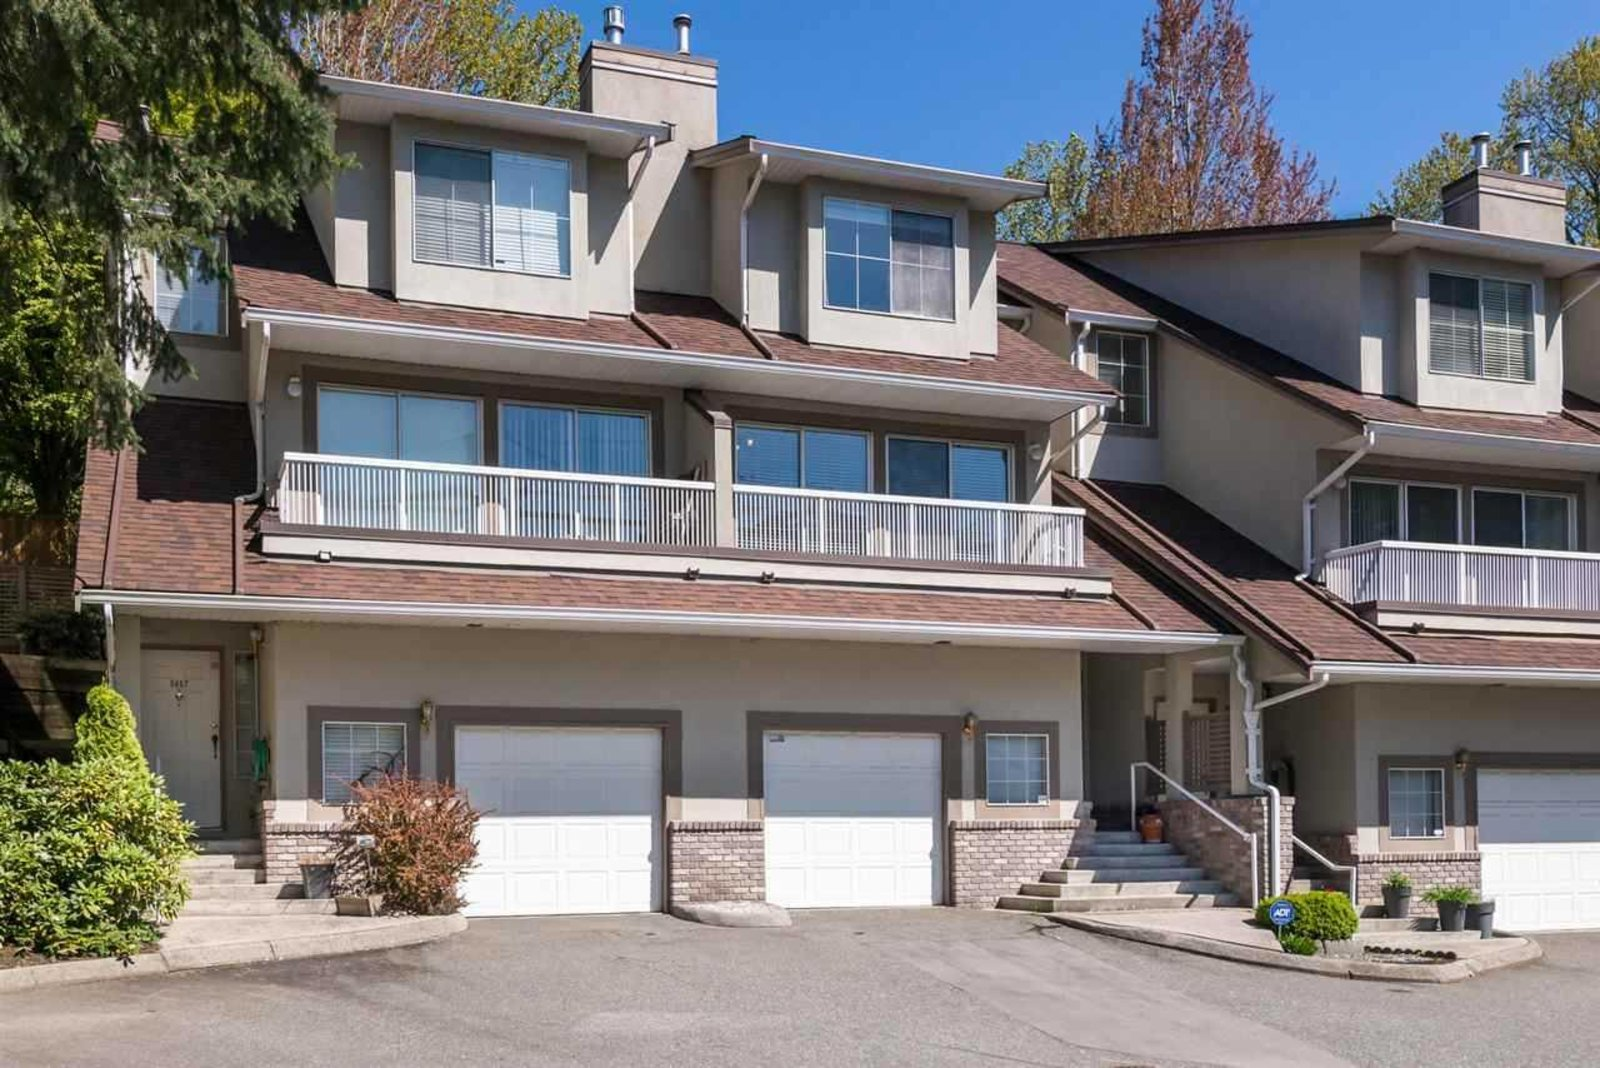 Sold 3459 Amberly Place Vancouver On November 2020 View Sold Price Bccondosandhomes